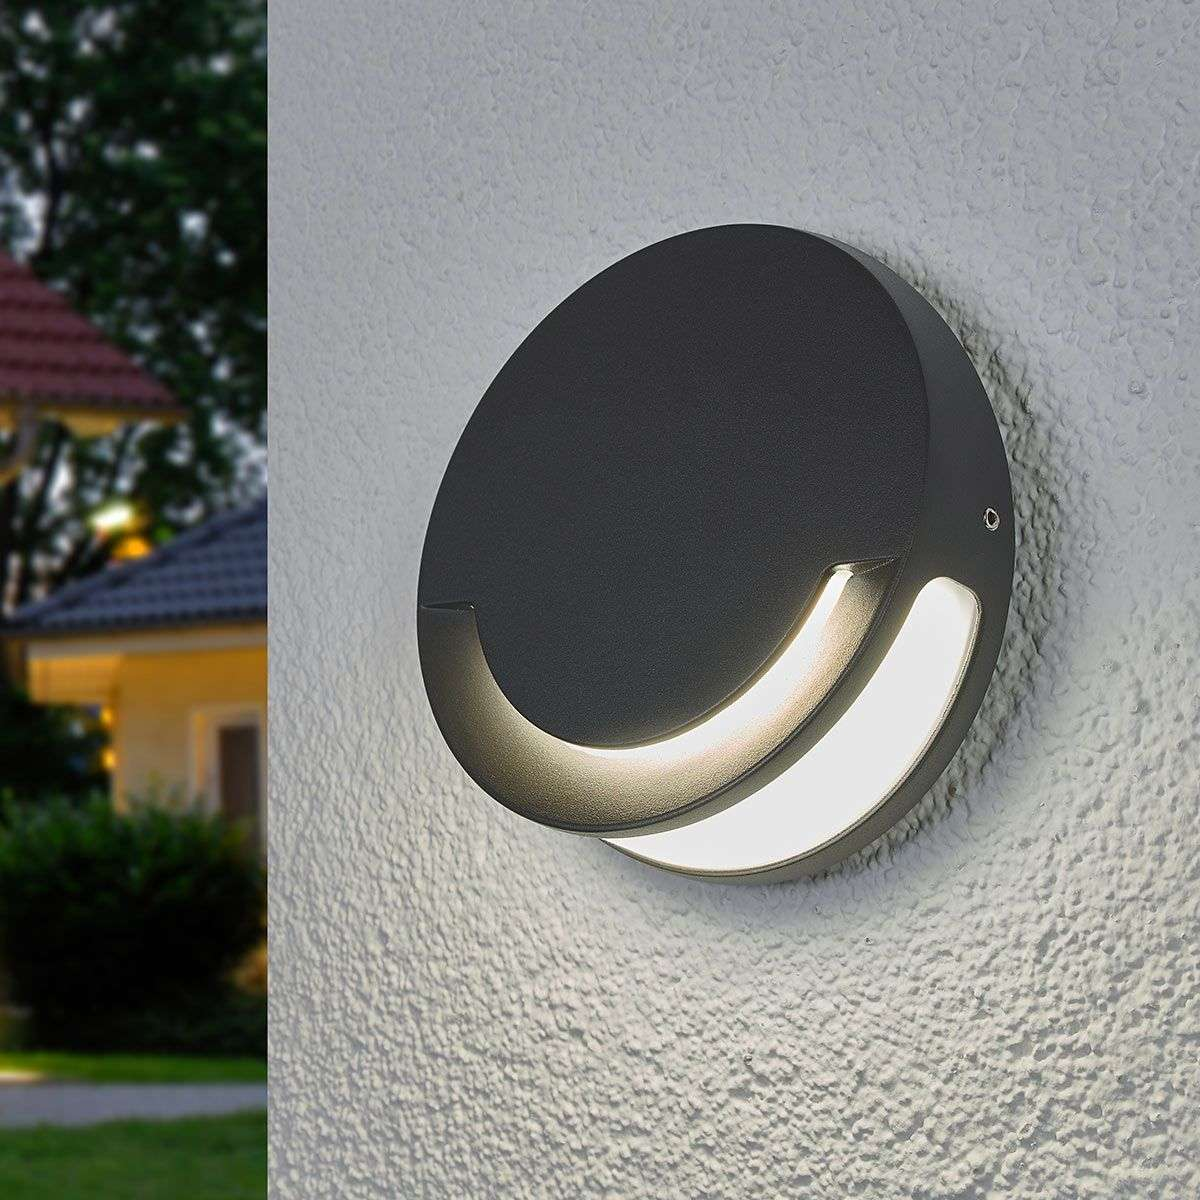 Sandwy Round Led Exterior Wall Light Ip44 3006207 31